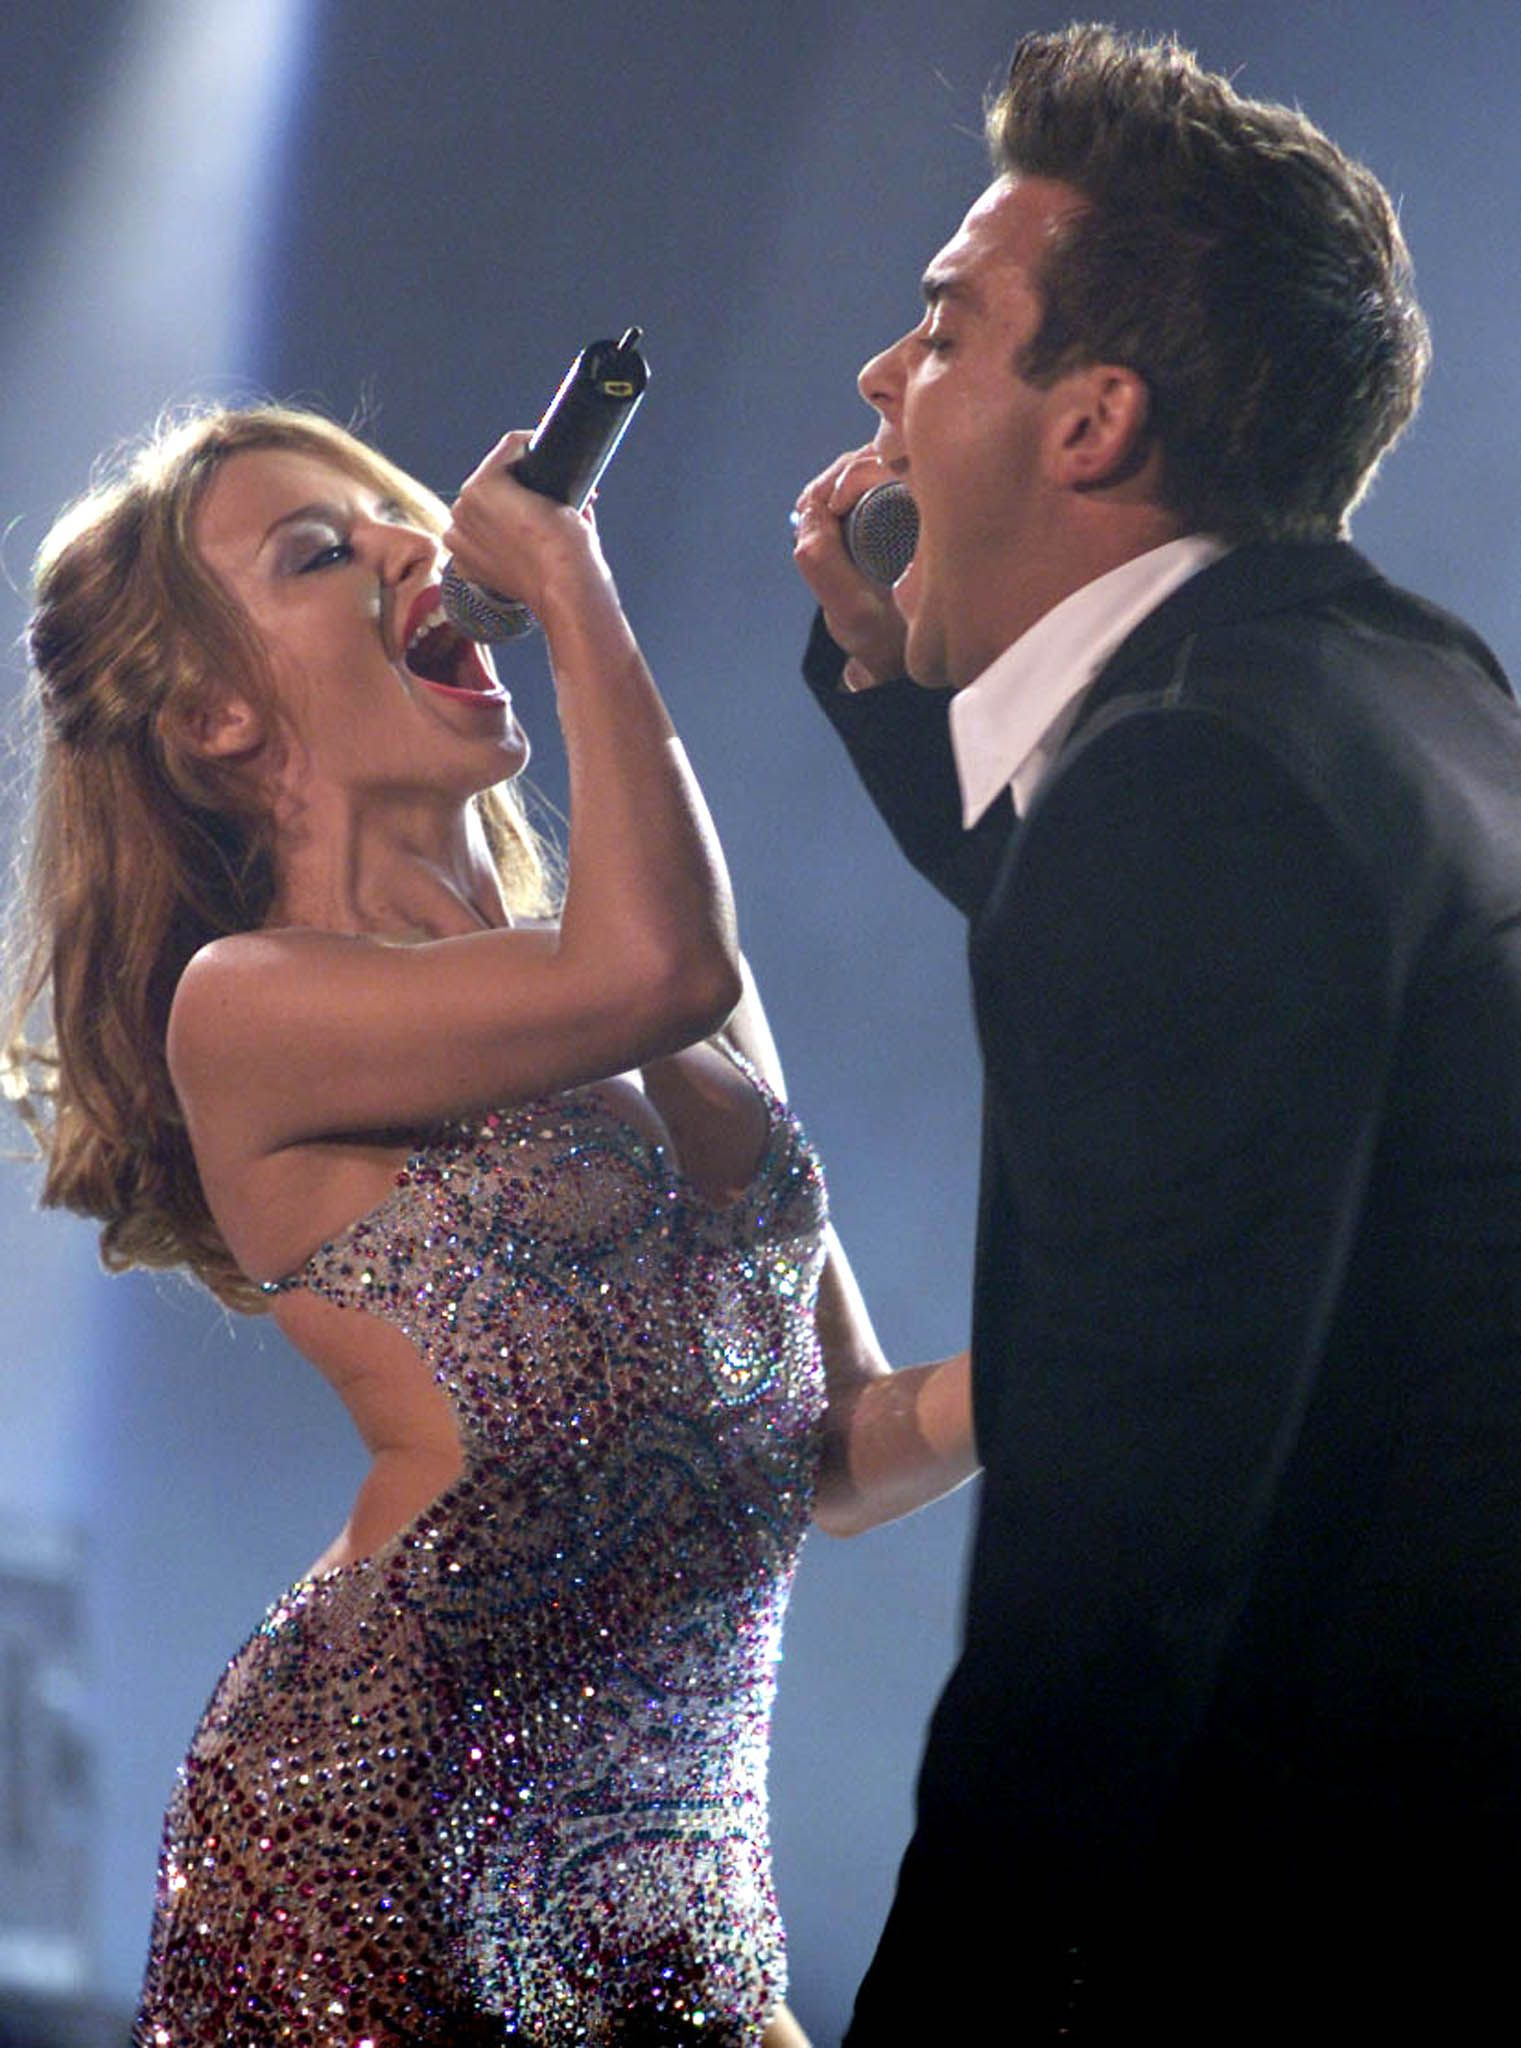 BRITISH SINGER ROBBIE WILLIAMS AND KYLIE MINOGUE PERFROM AT THE MTV EUROPE MUSIC AWARDS IN STOCKHOLM.